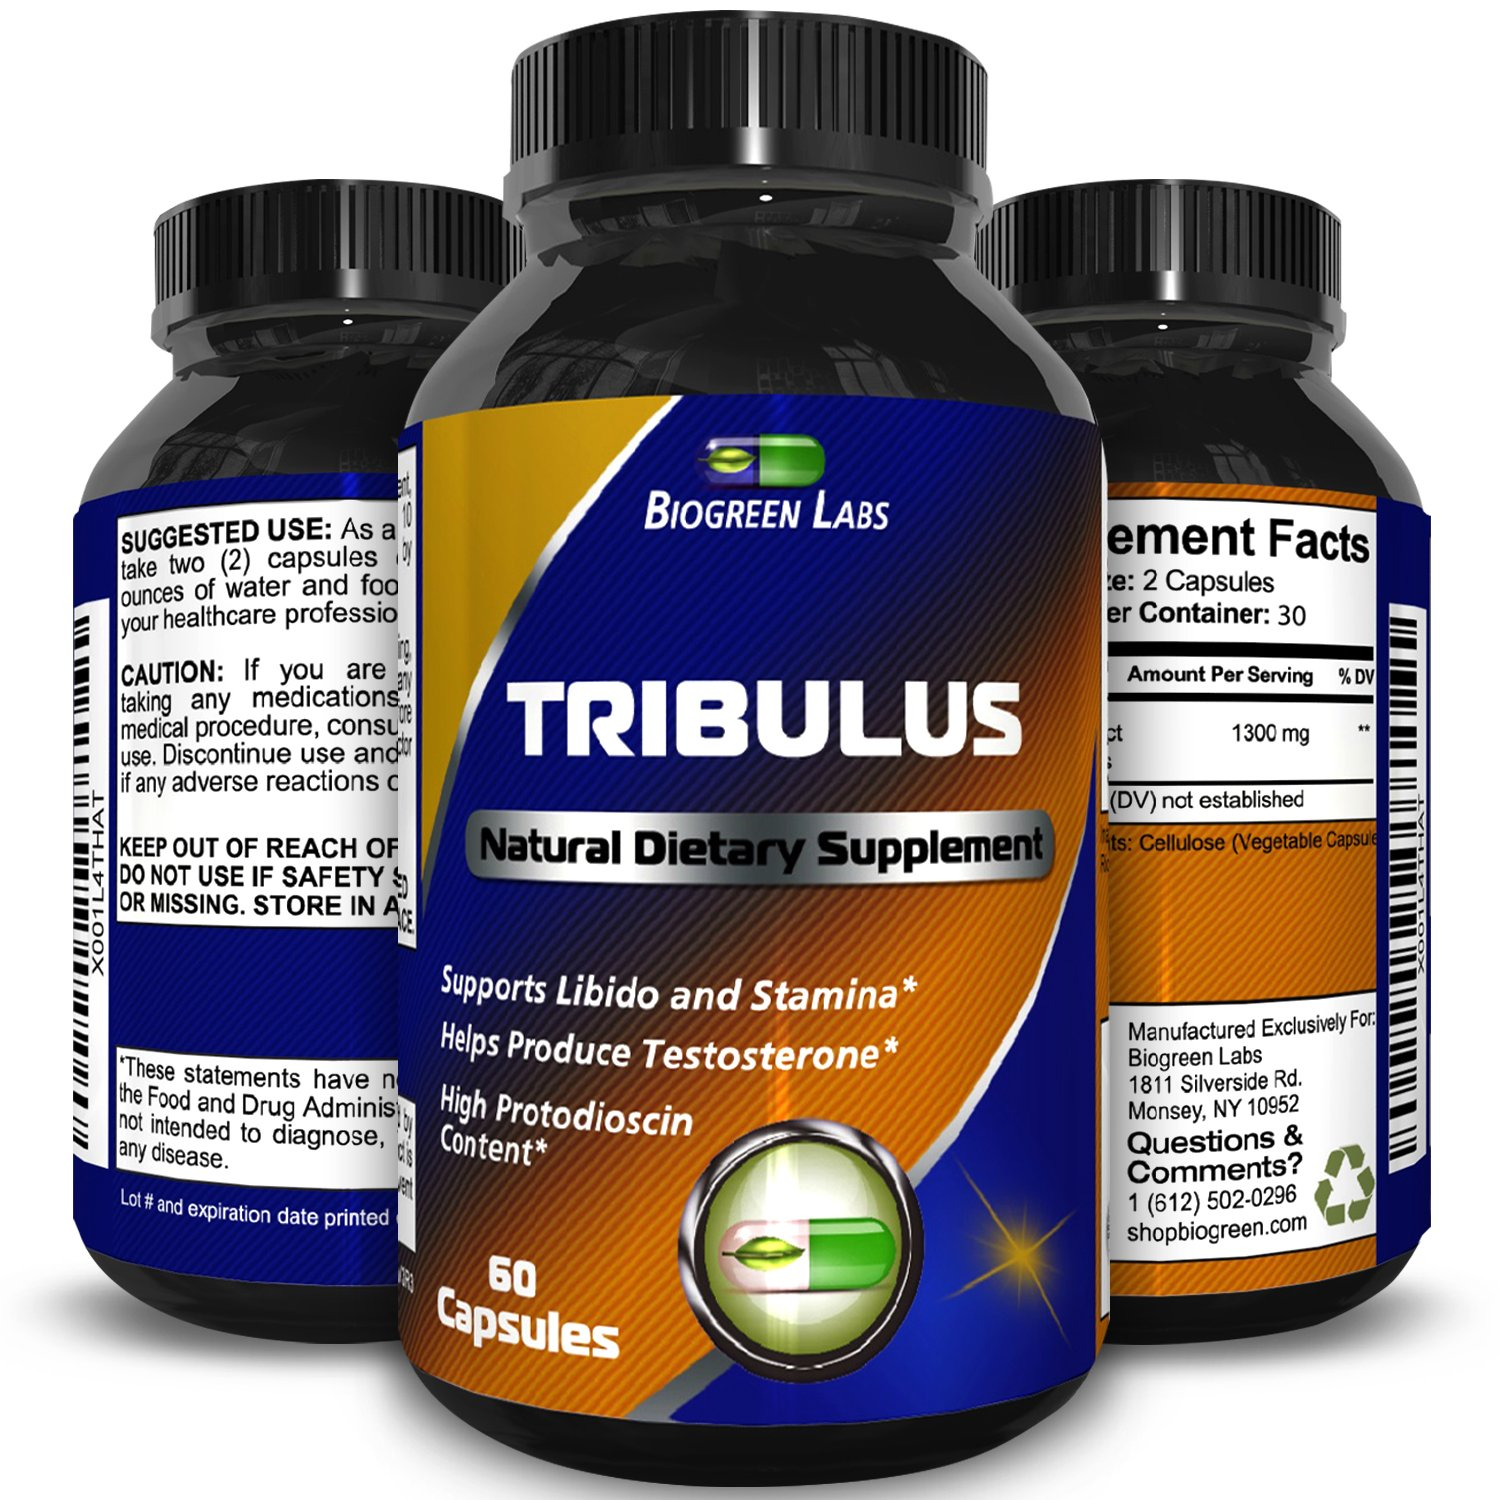 TRIBULUS TERRESTRIS 1300 mg  90 Capsules A Natural Supplement Boosts Vitality and Energy, Tribulus Increases Testosterone Levels for Improved Sexual Performance and Stamina by Biogreen Labs